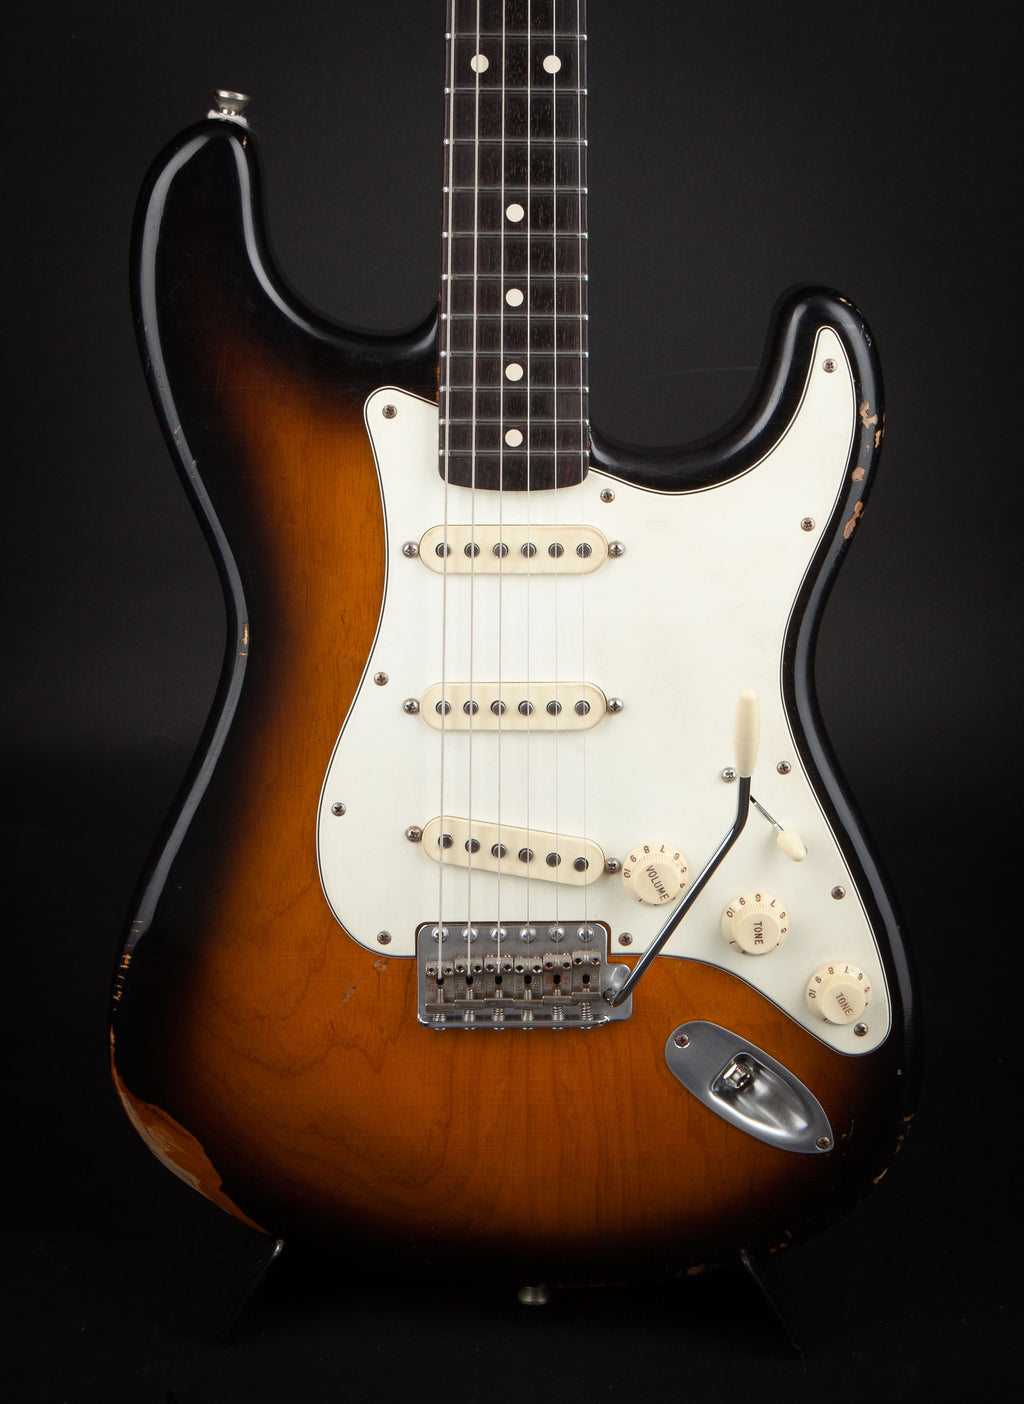 Smitty Guitars: Classic S Sunburst with Mastergrade Flame Neck